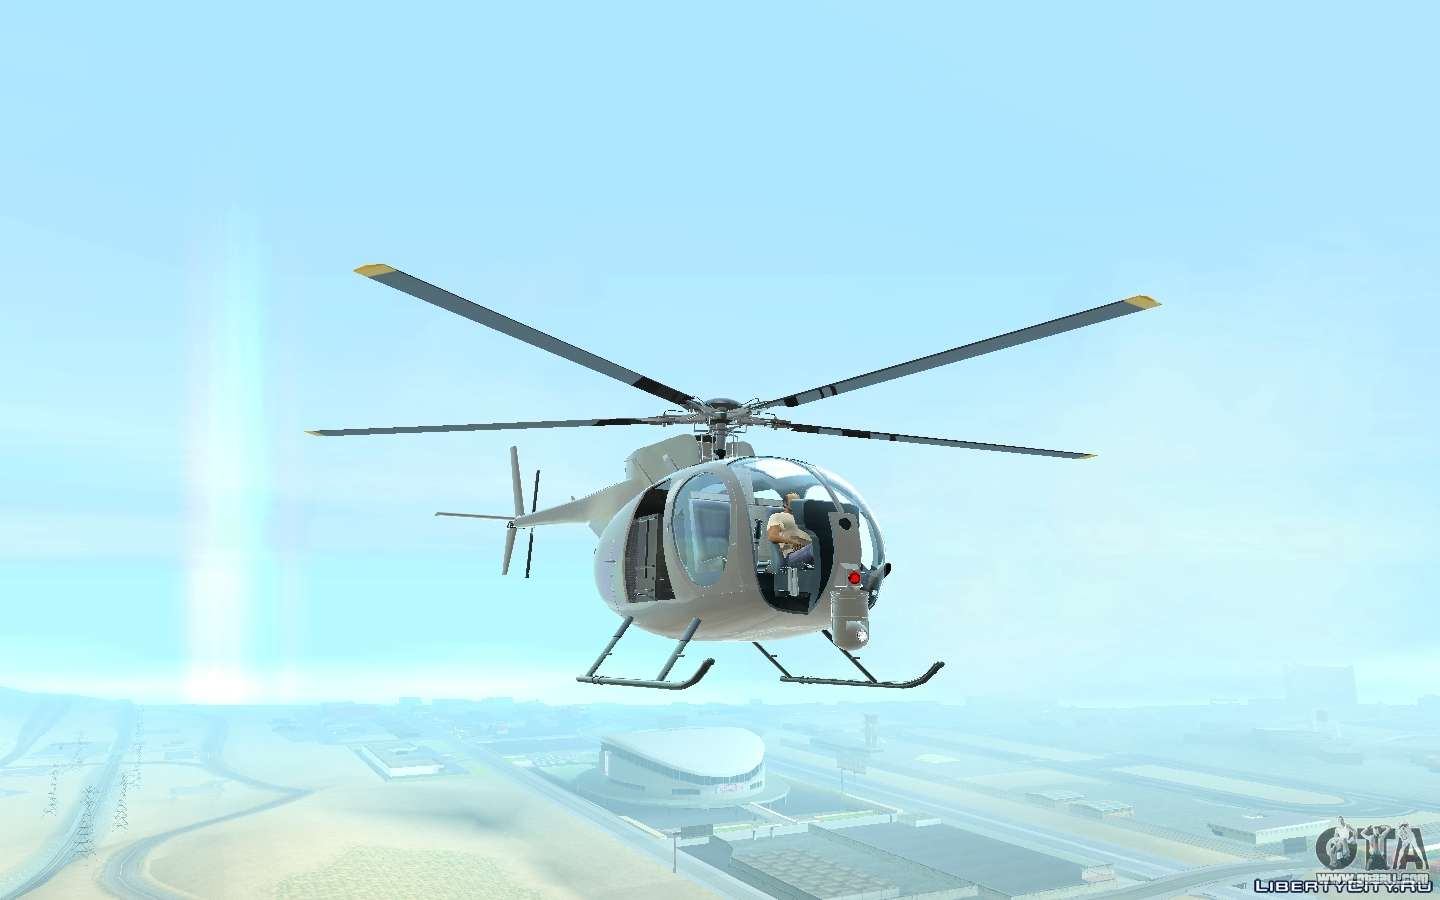 buzzard helicopter with 32208 Buzzard Attack Chopper on 41718 Gta Iv Tbogt Nagasaki Buzzard in addition Sikorsky ch53 main rotor 2400x1600 moreover Us Ps4 Cheats Codes For Gta 5 additionally Watch together with Ah 6j Little Bird.